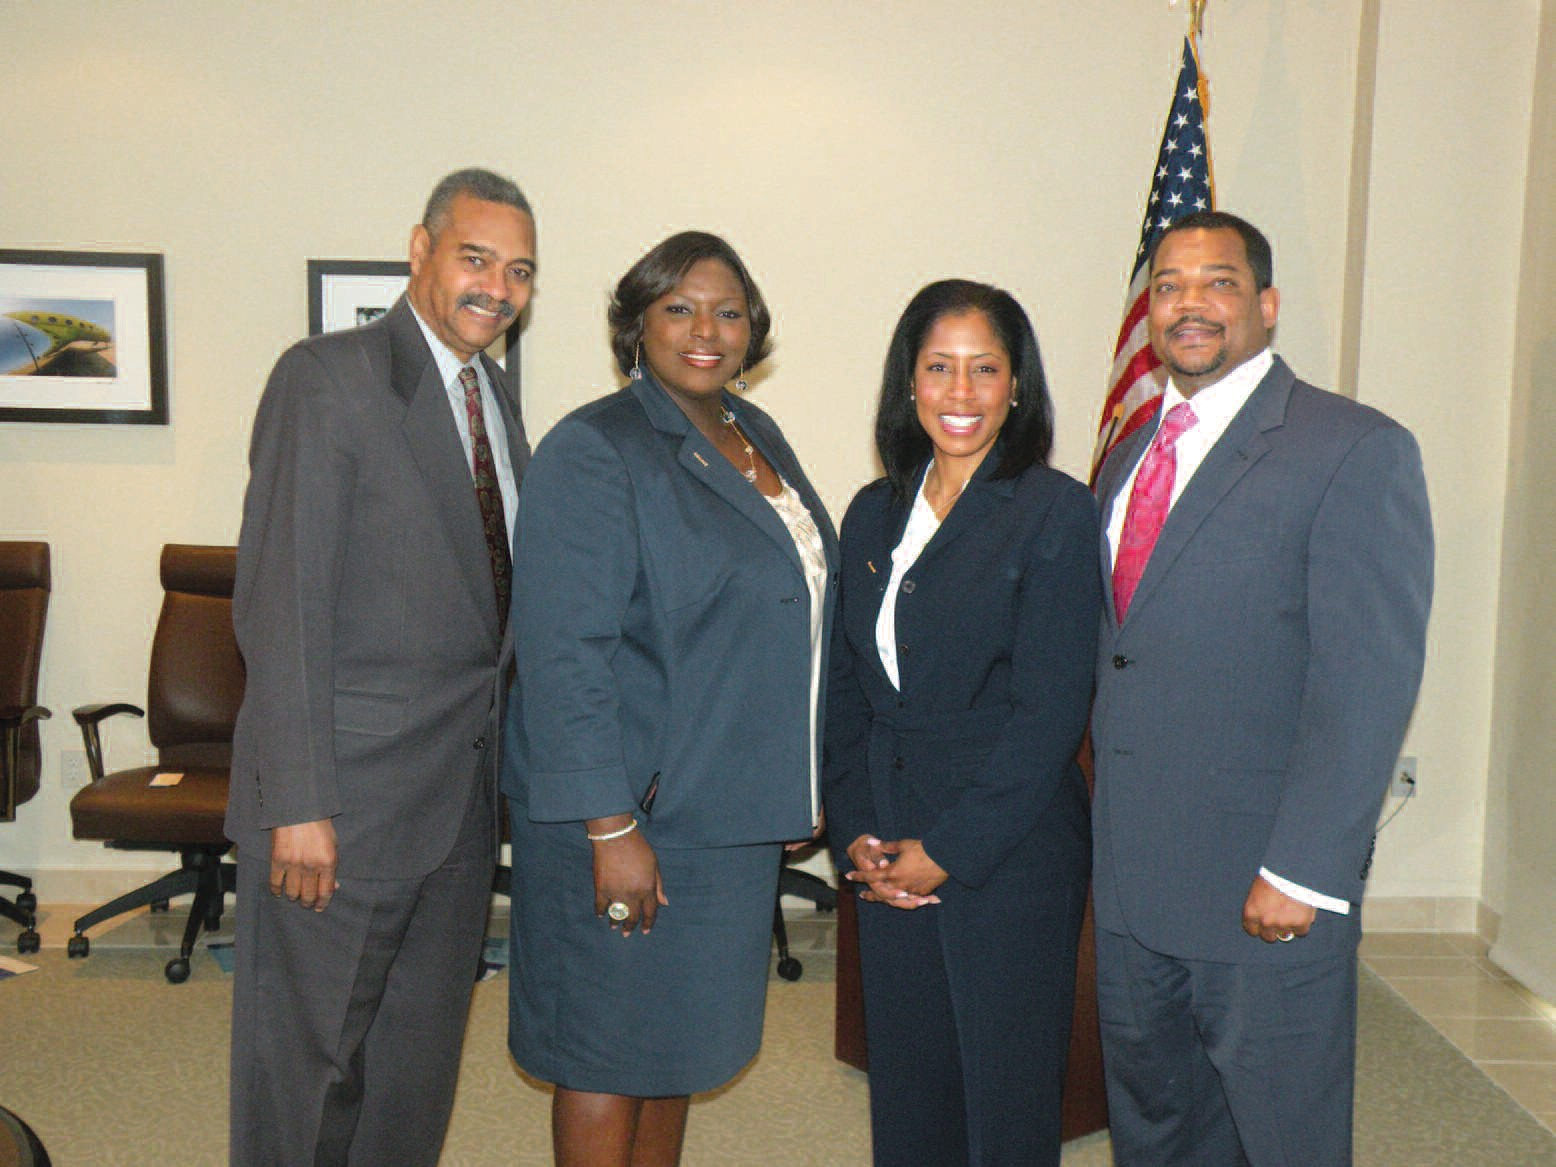 Pictured l-r are: Dr. Walter Evans, SEDA Minority Task Force, Shantell Wilson, Assistant Director of Established Business and Minority Task Force of SEDA, Jill Snell, and Ira Snell, President & CEO of Snell Enterprises